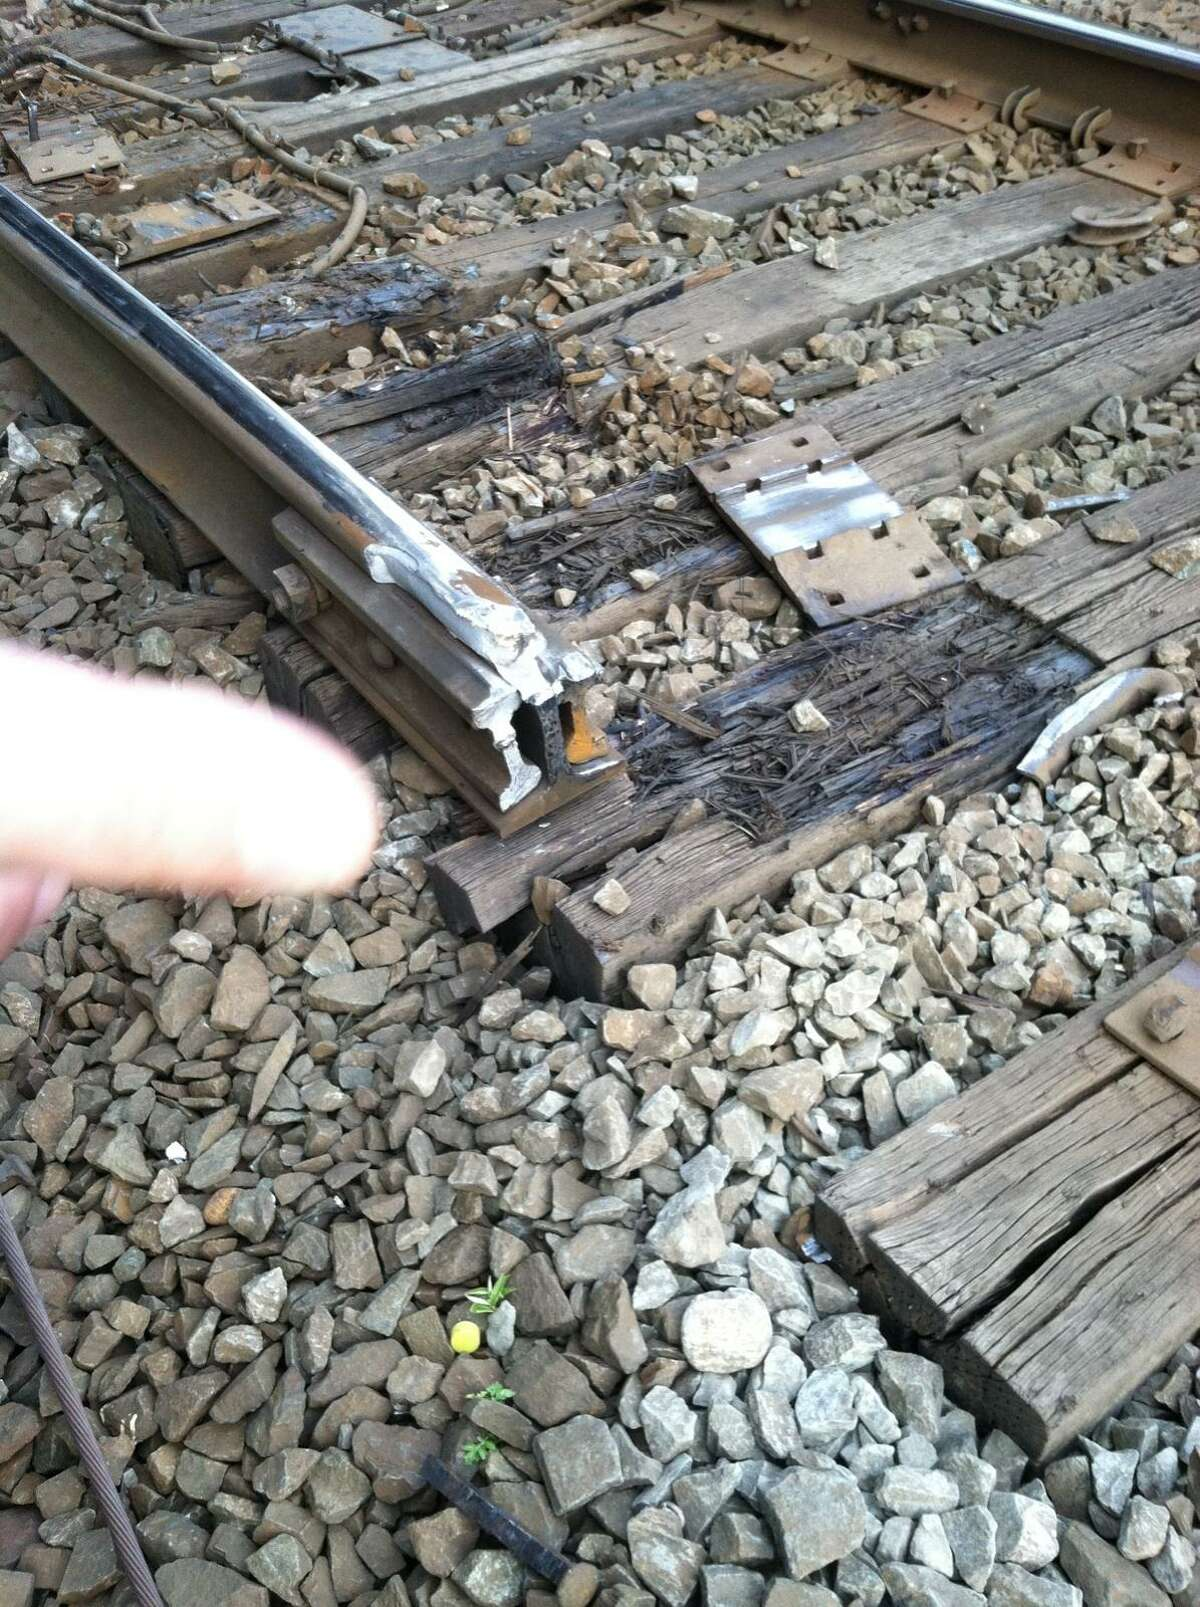 Photo courtesy of George Cahill. This photo shows the point where a train derailed on May 15. A section of track has been removed for a federal investigation.